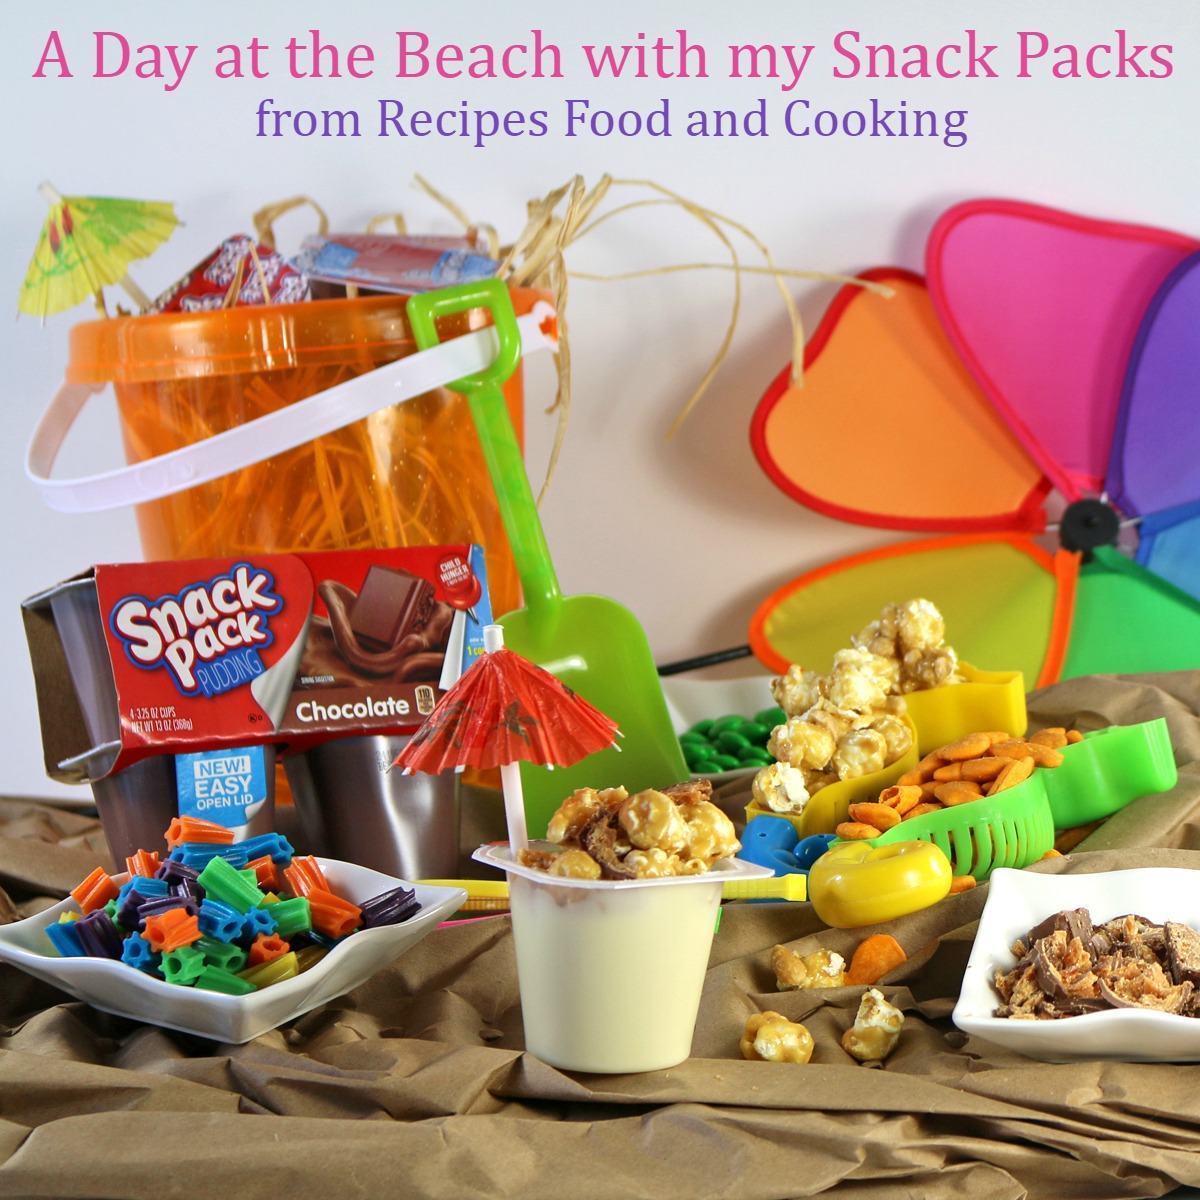 Have a Snack Pack Day at the Beach